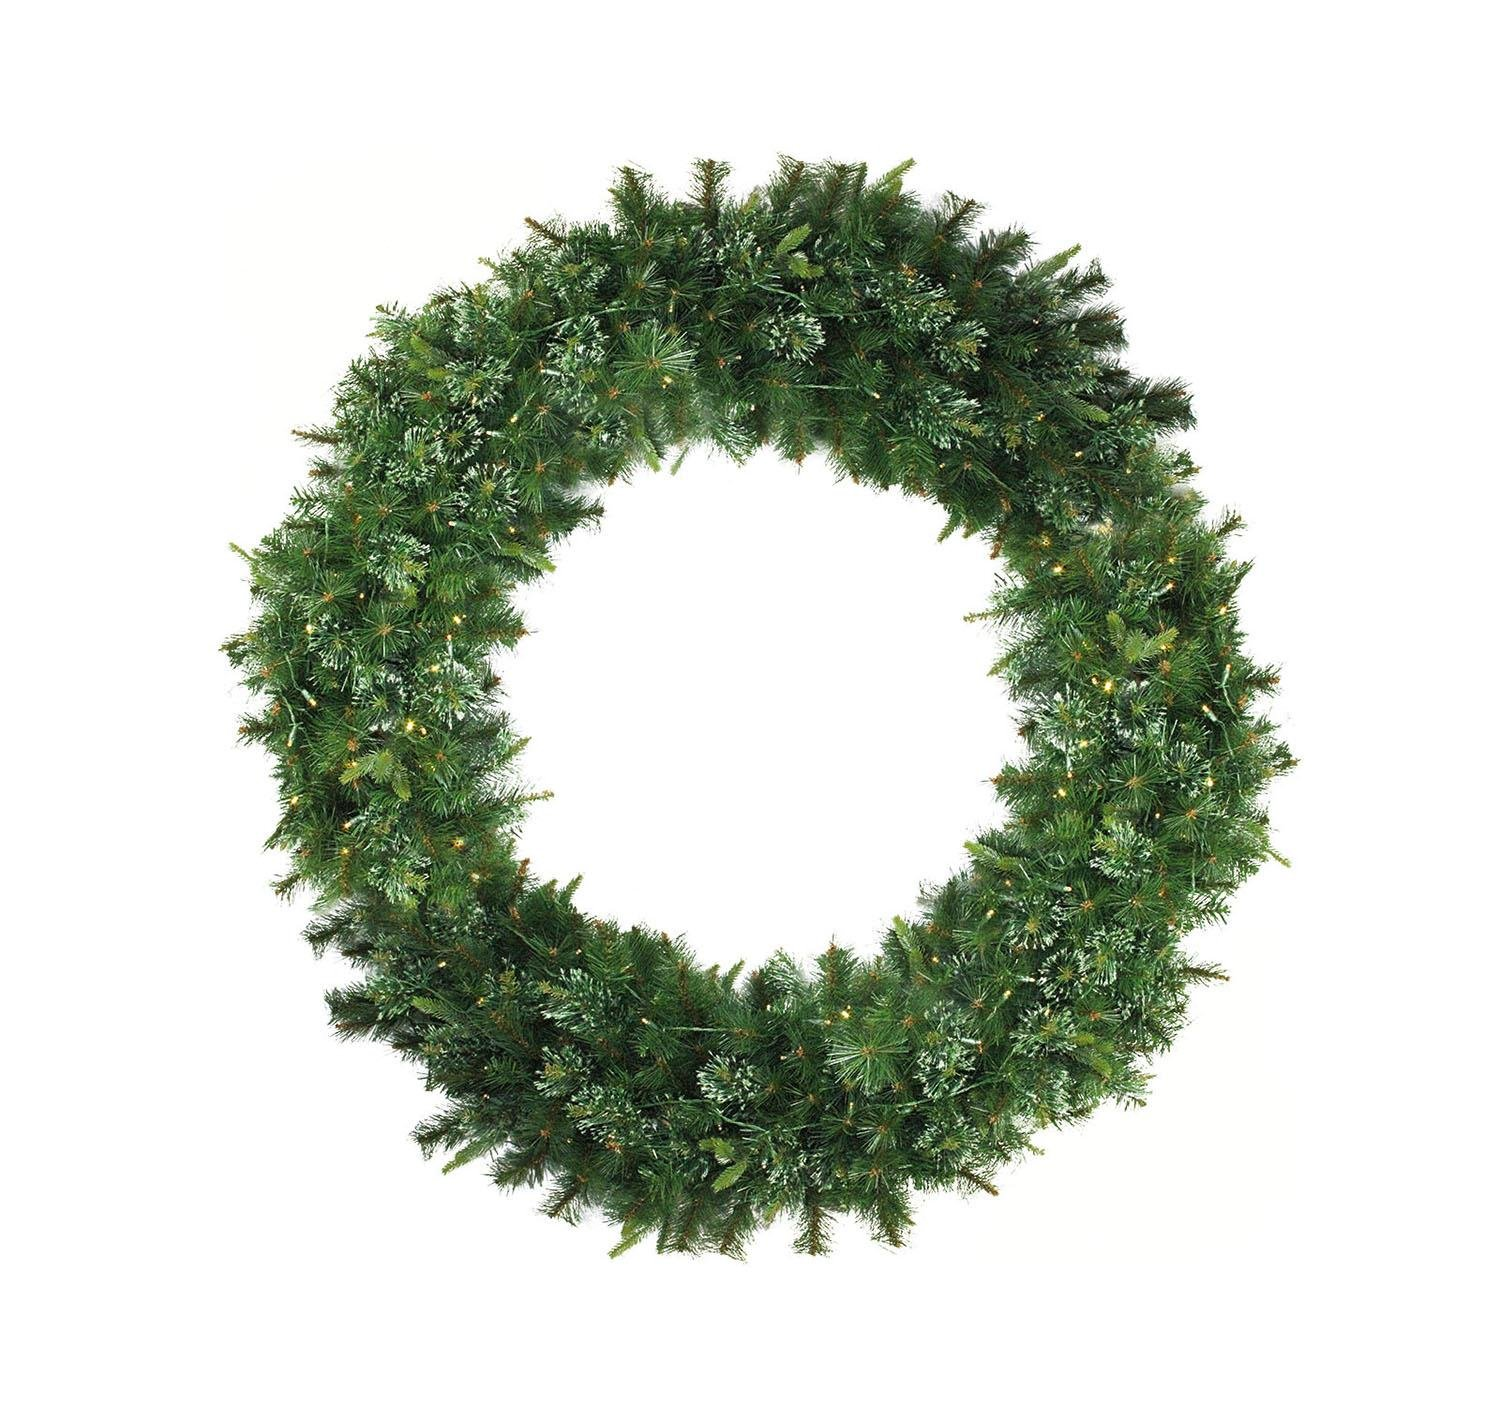 Northlight 5' Pre-Lit Cashmere Mixed Pine Commerical Artificial Christmas Wreath - Warm White LED Lights